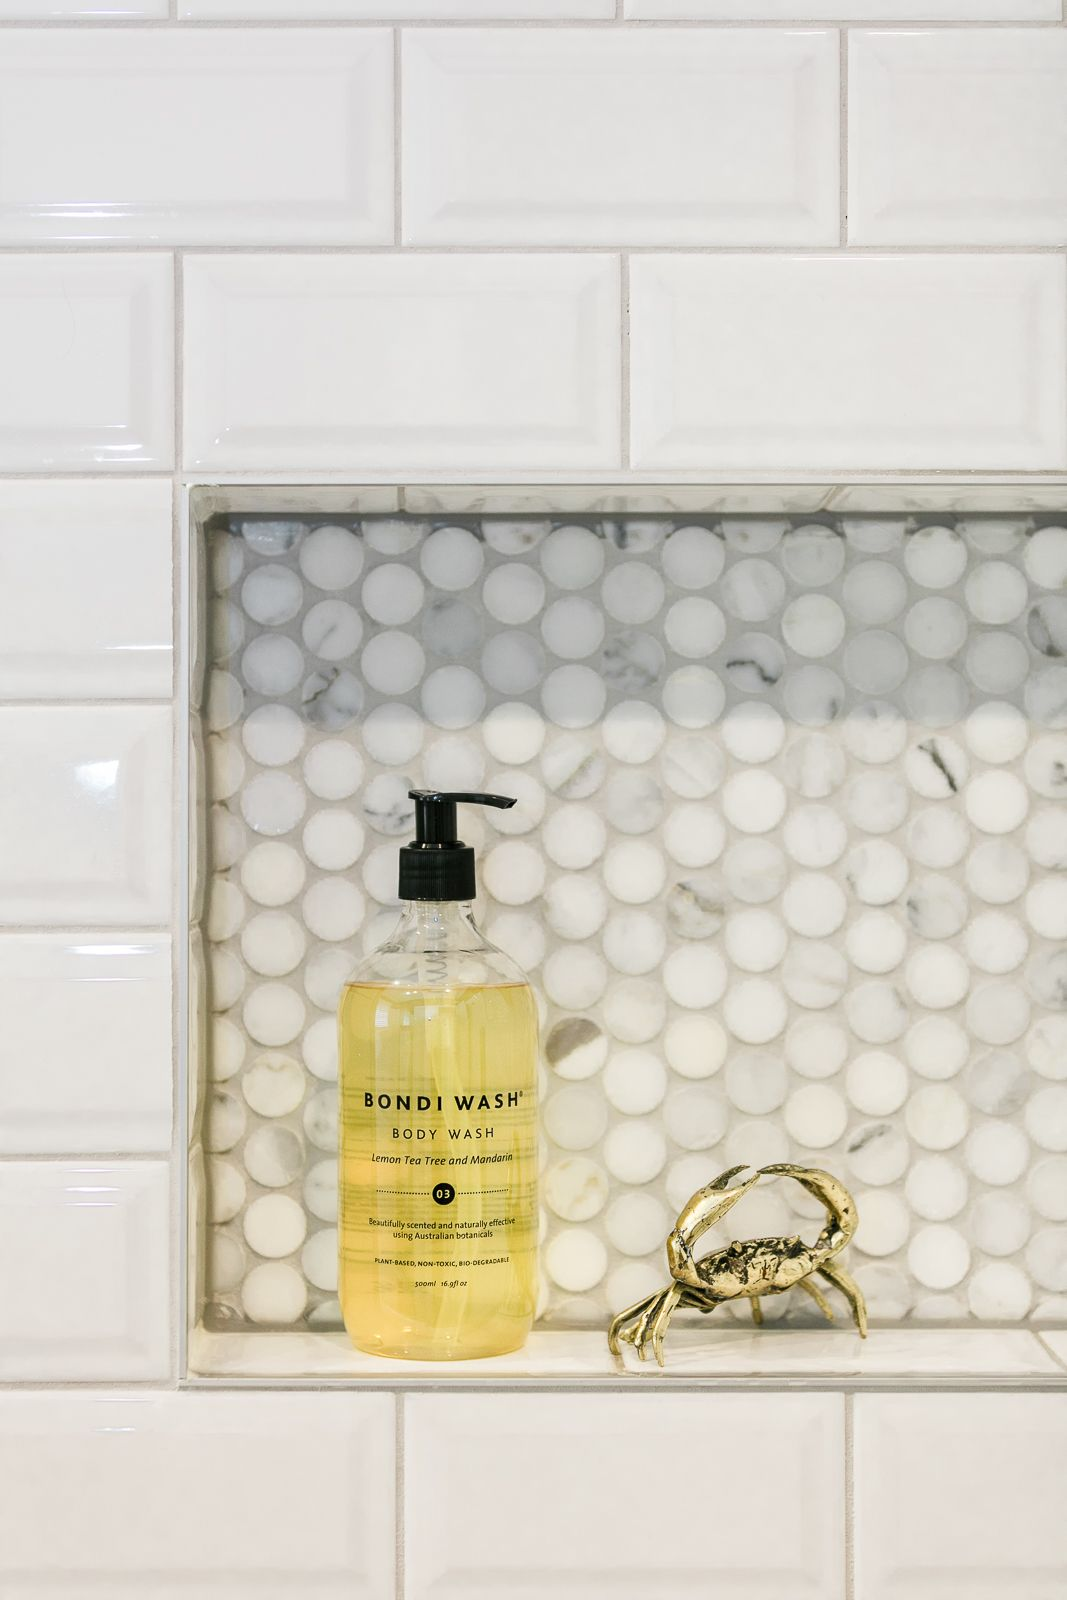 20 things I learned from my first bathroom reno #bathroomrenoideas